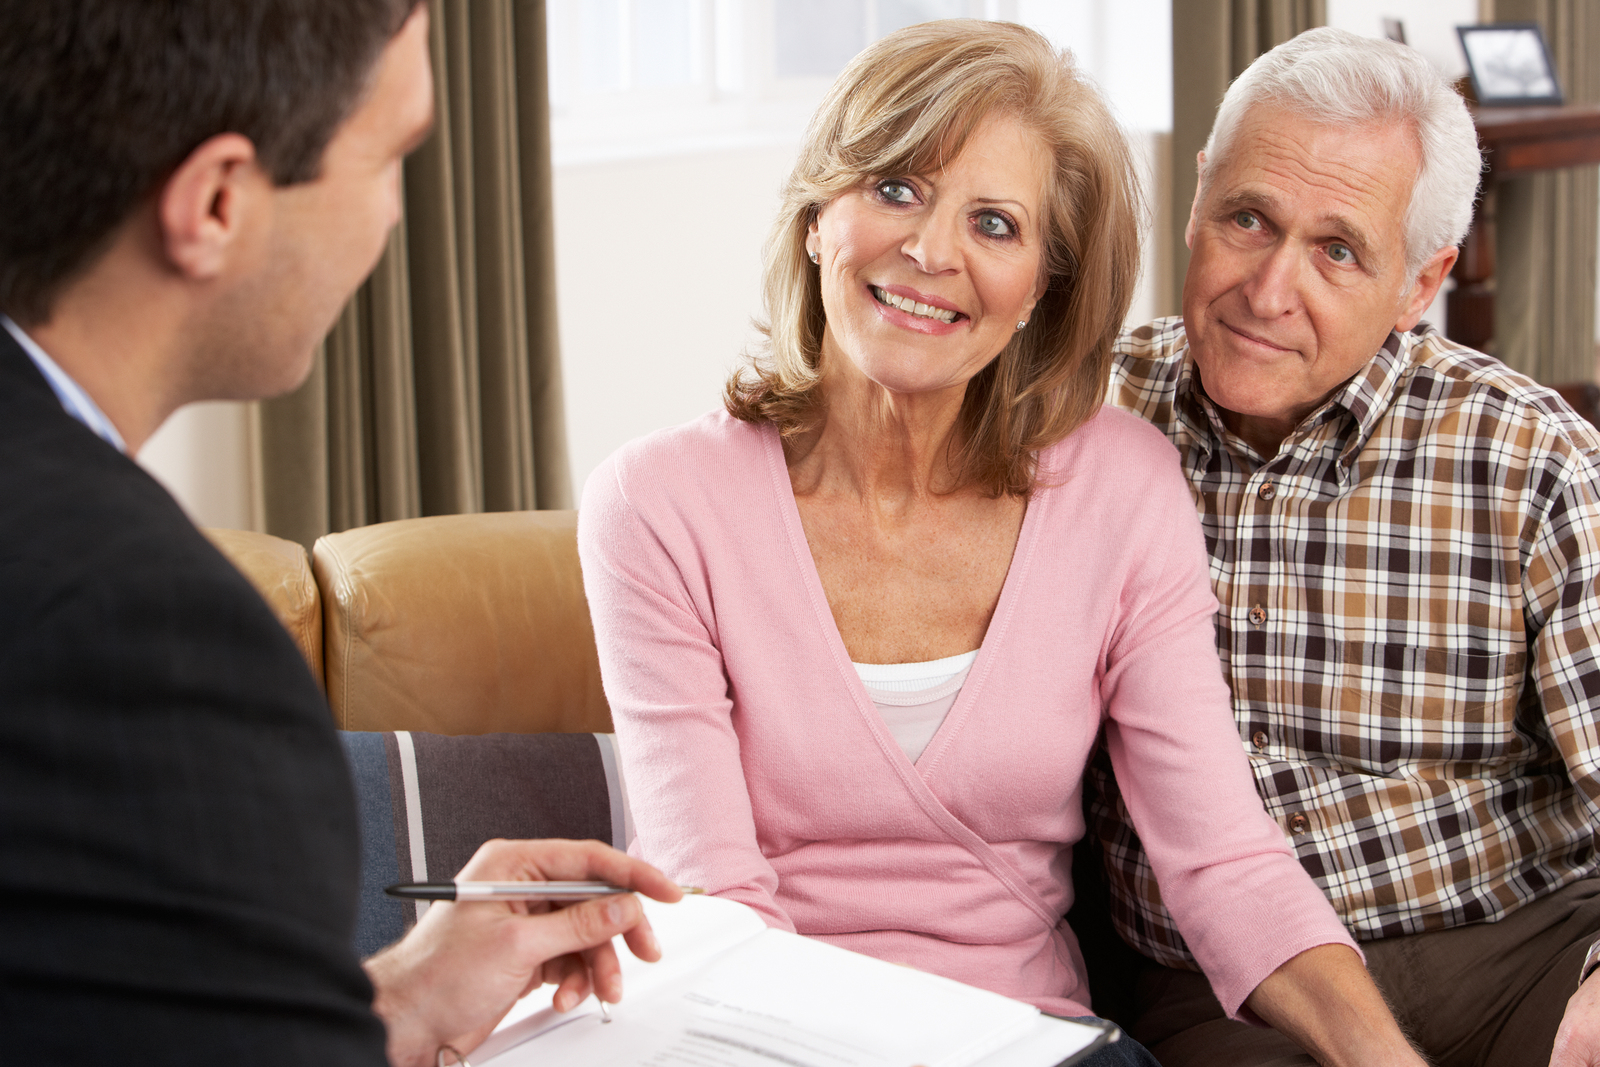 Top 8 Reasons To Hire a Financial Advisor for Your Retirement